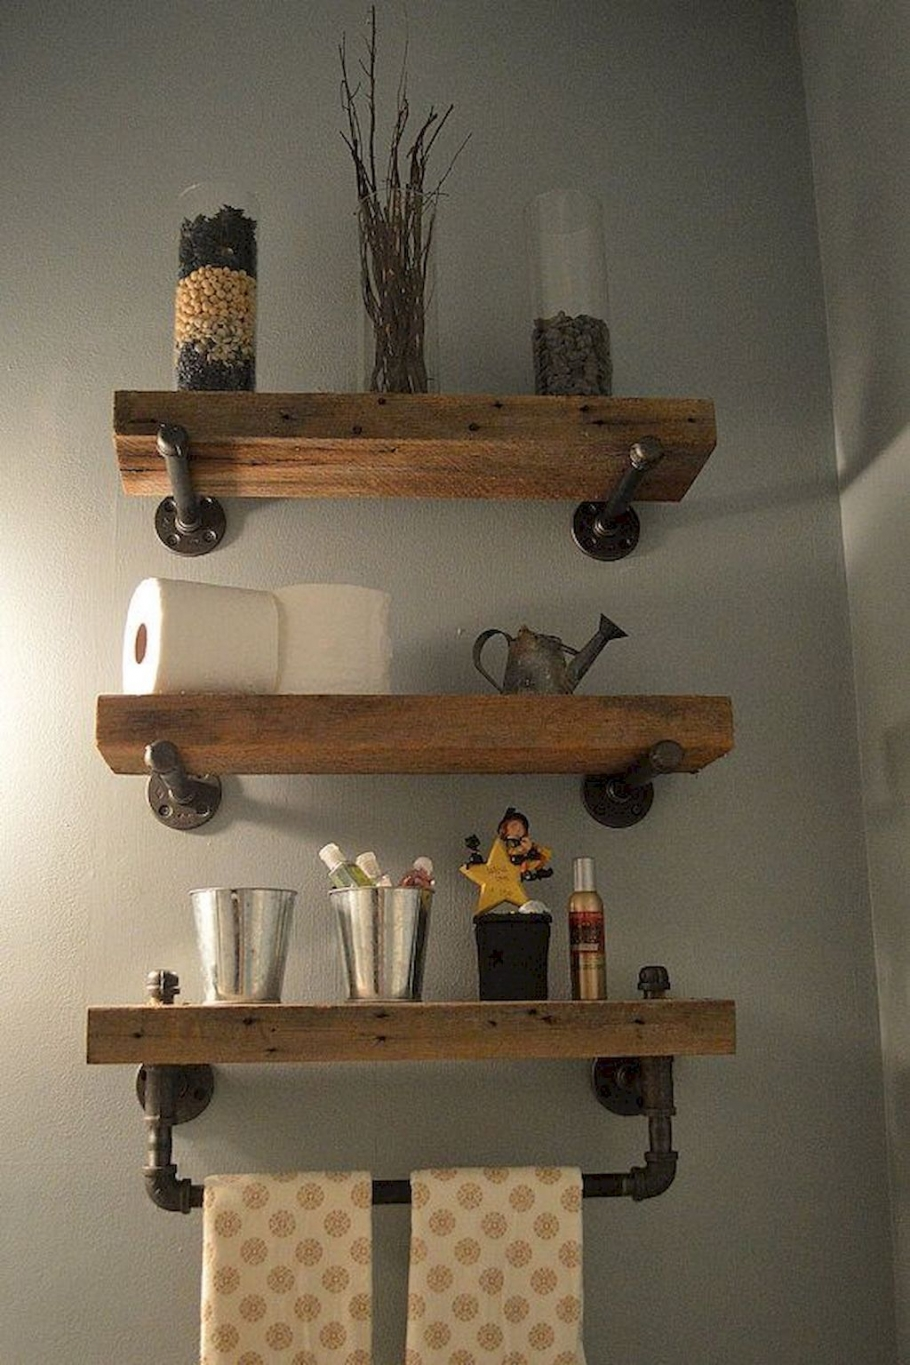 96 Models Bathroom Shelf with Industrial Farmhouse towel Bar - Tips for Buying It-9057